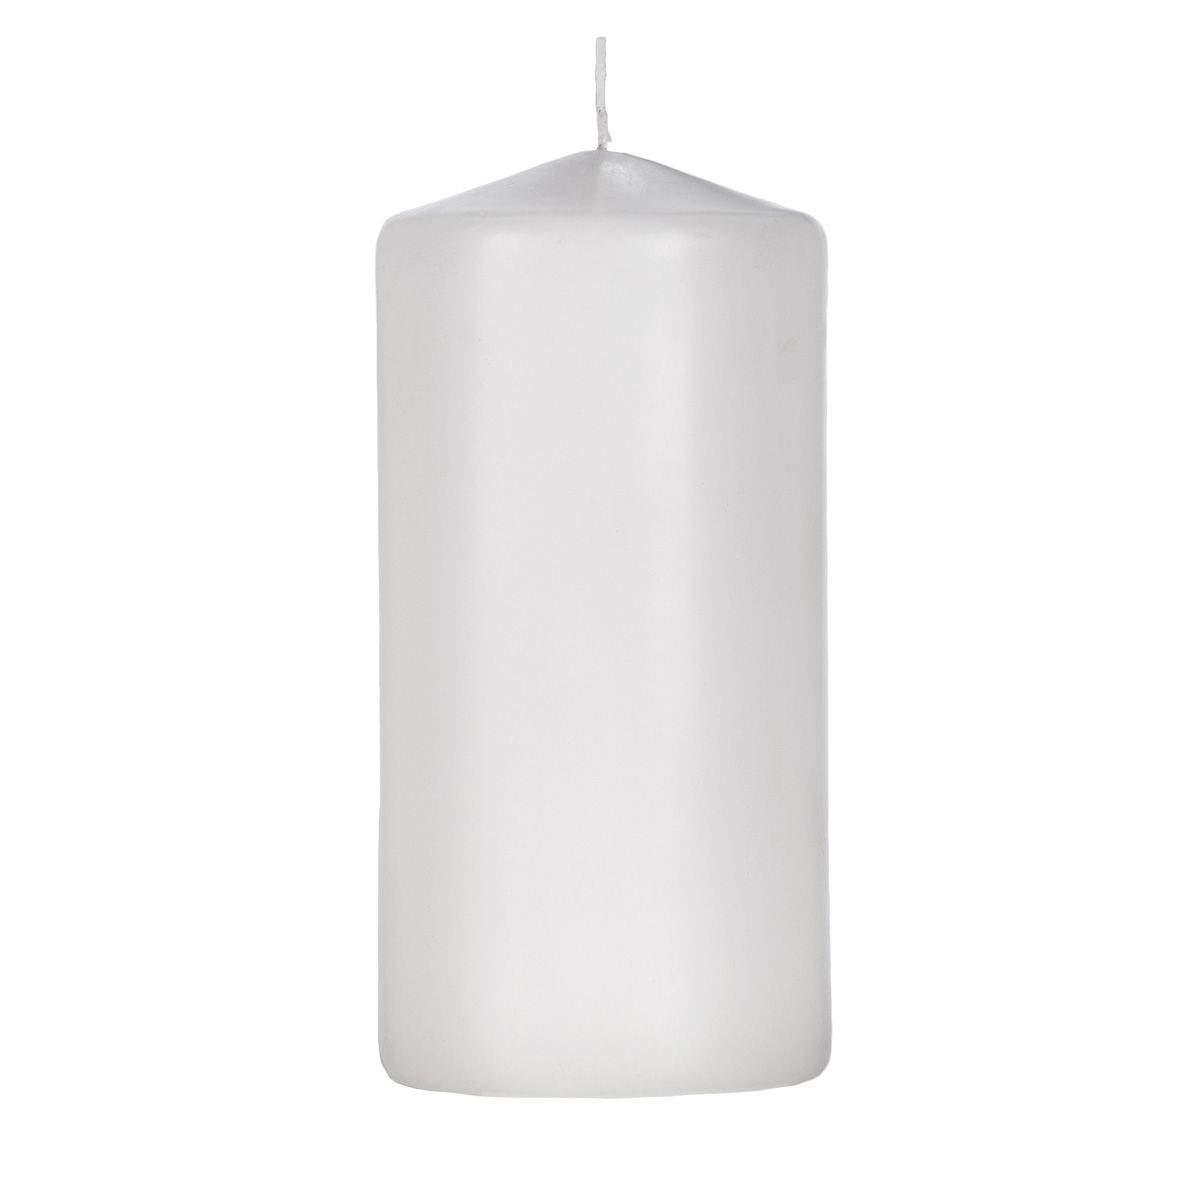 3x6 White Pillar Candle